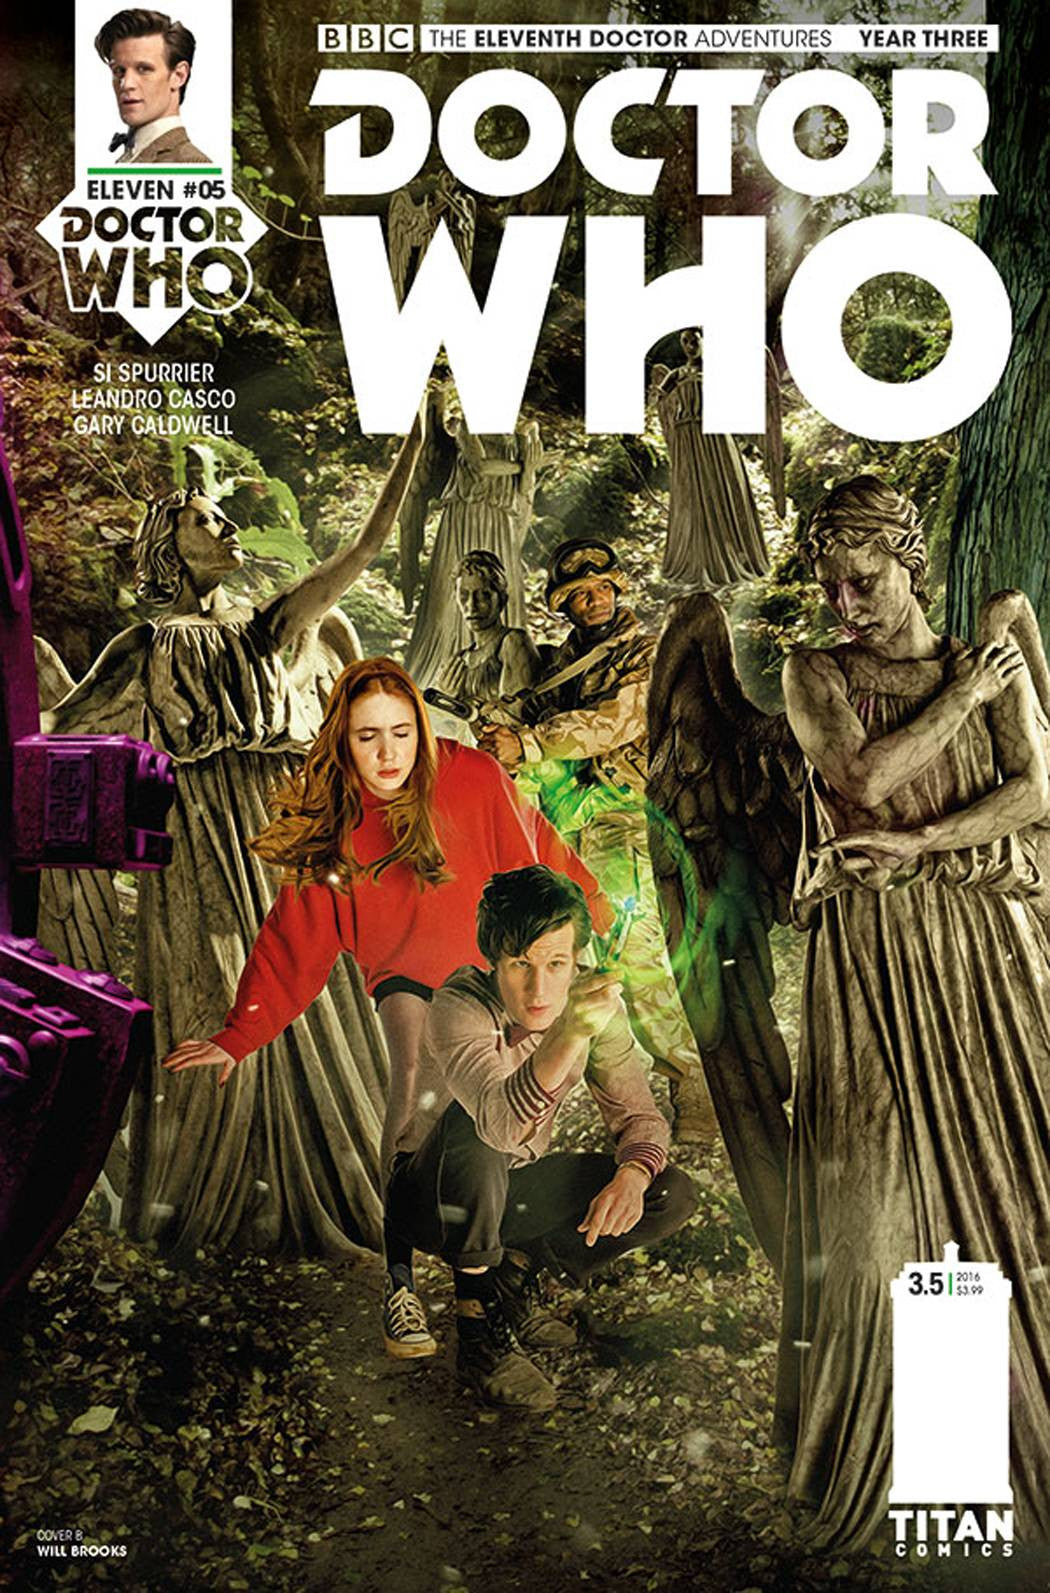 DOCTOR WHO 11TH YEAR THREE #5 CVR B PHOTO